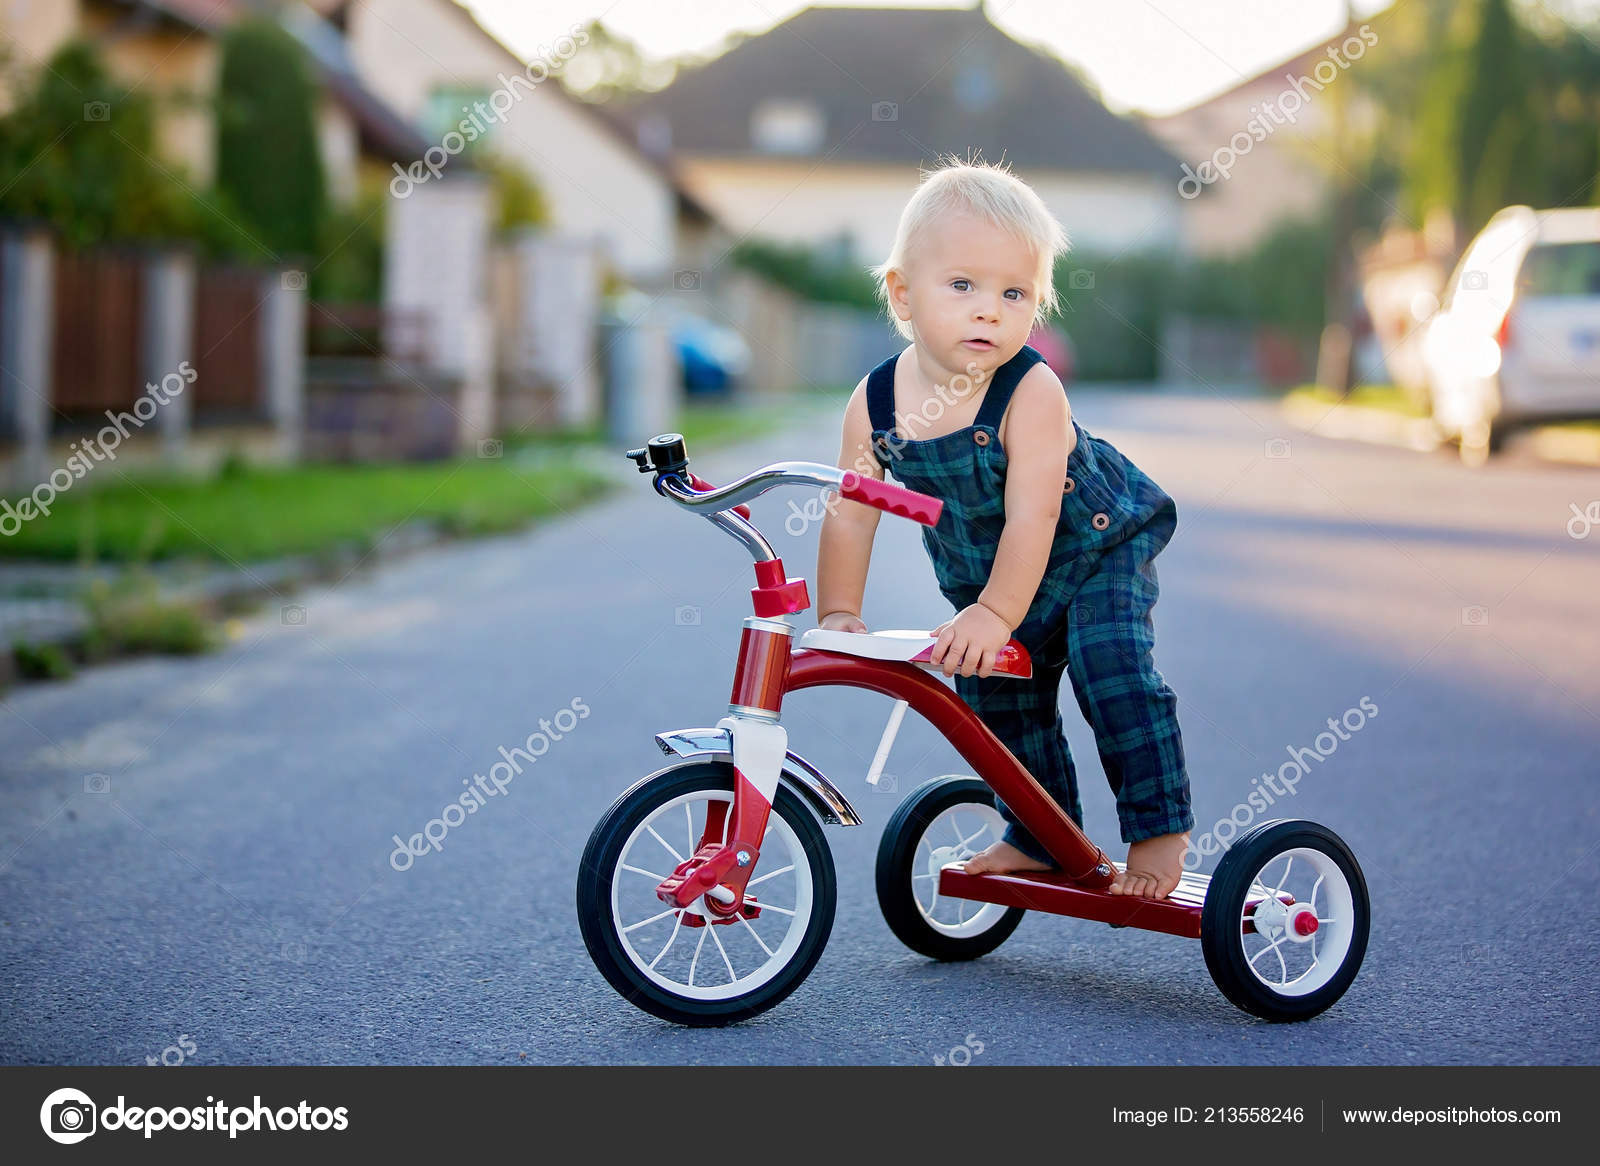 d70e2a72c3d Cute Toddler Child Boy Playing Tricycle Street Kid Riding Bike — Stock Photo